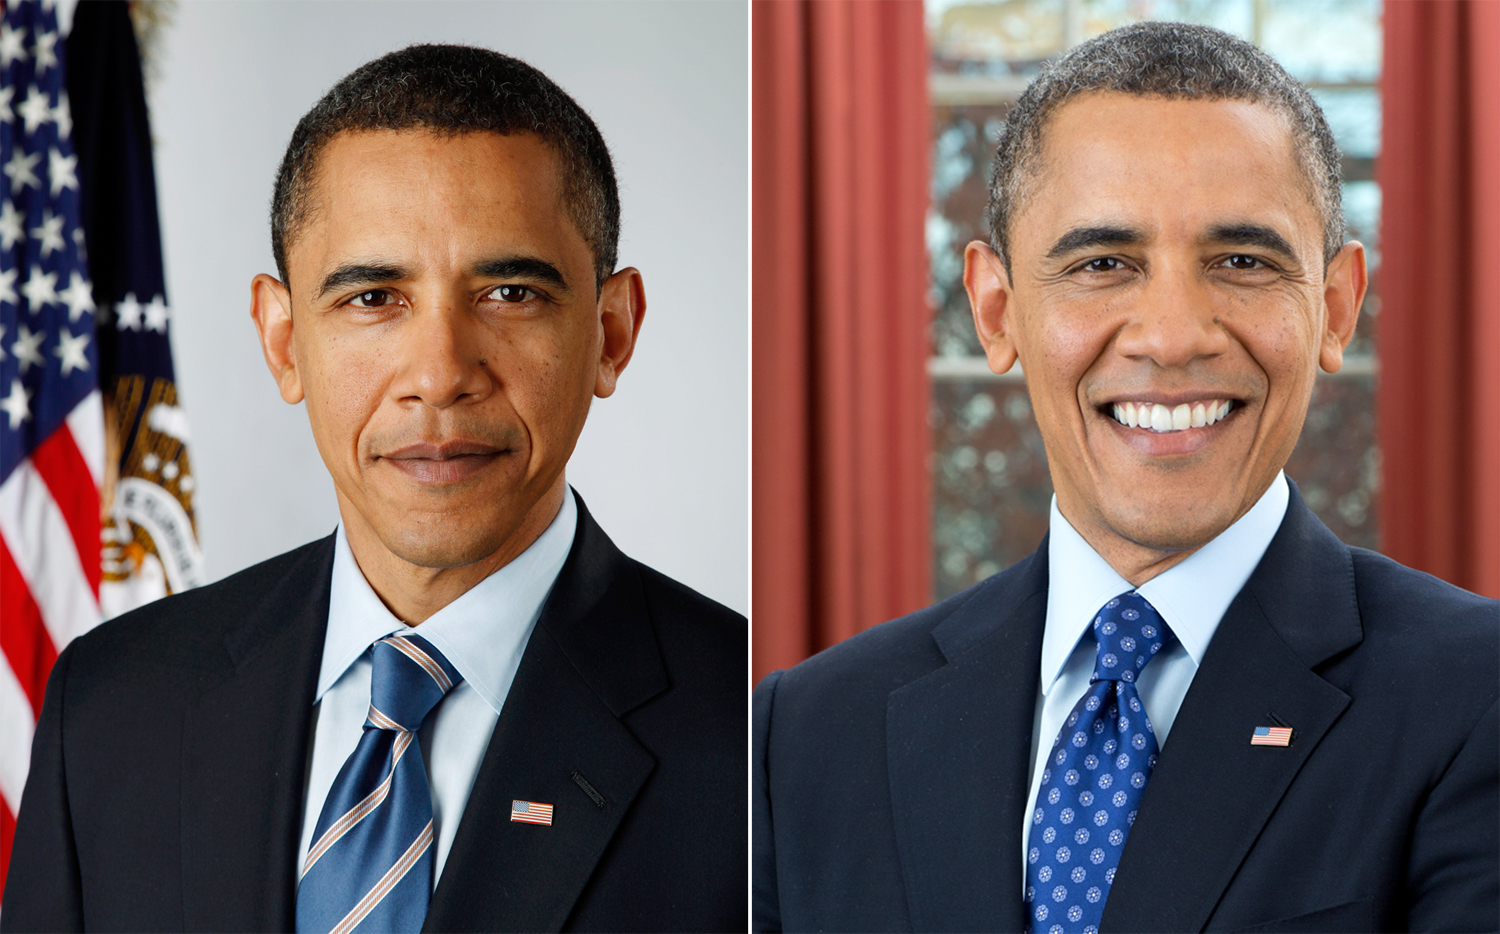 New portrait of President Obama unveiled - TODAY.com